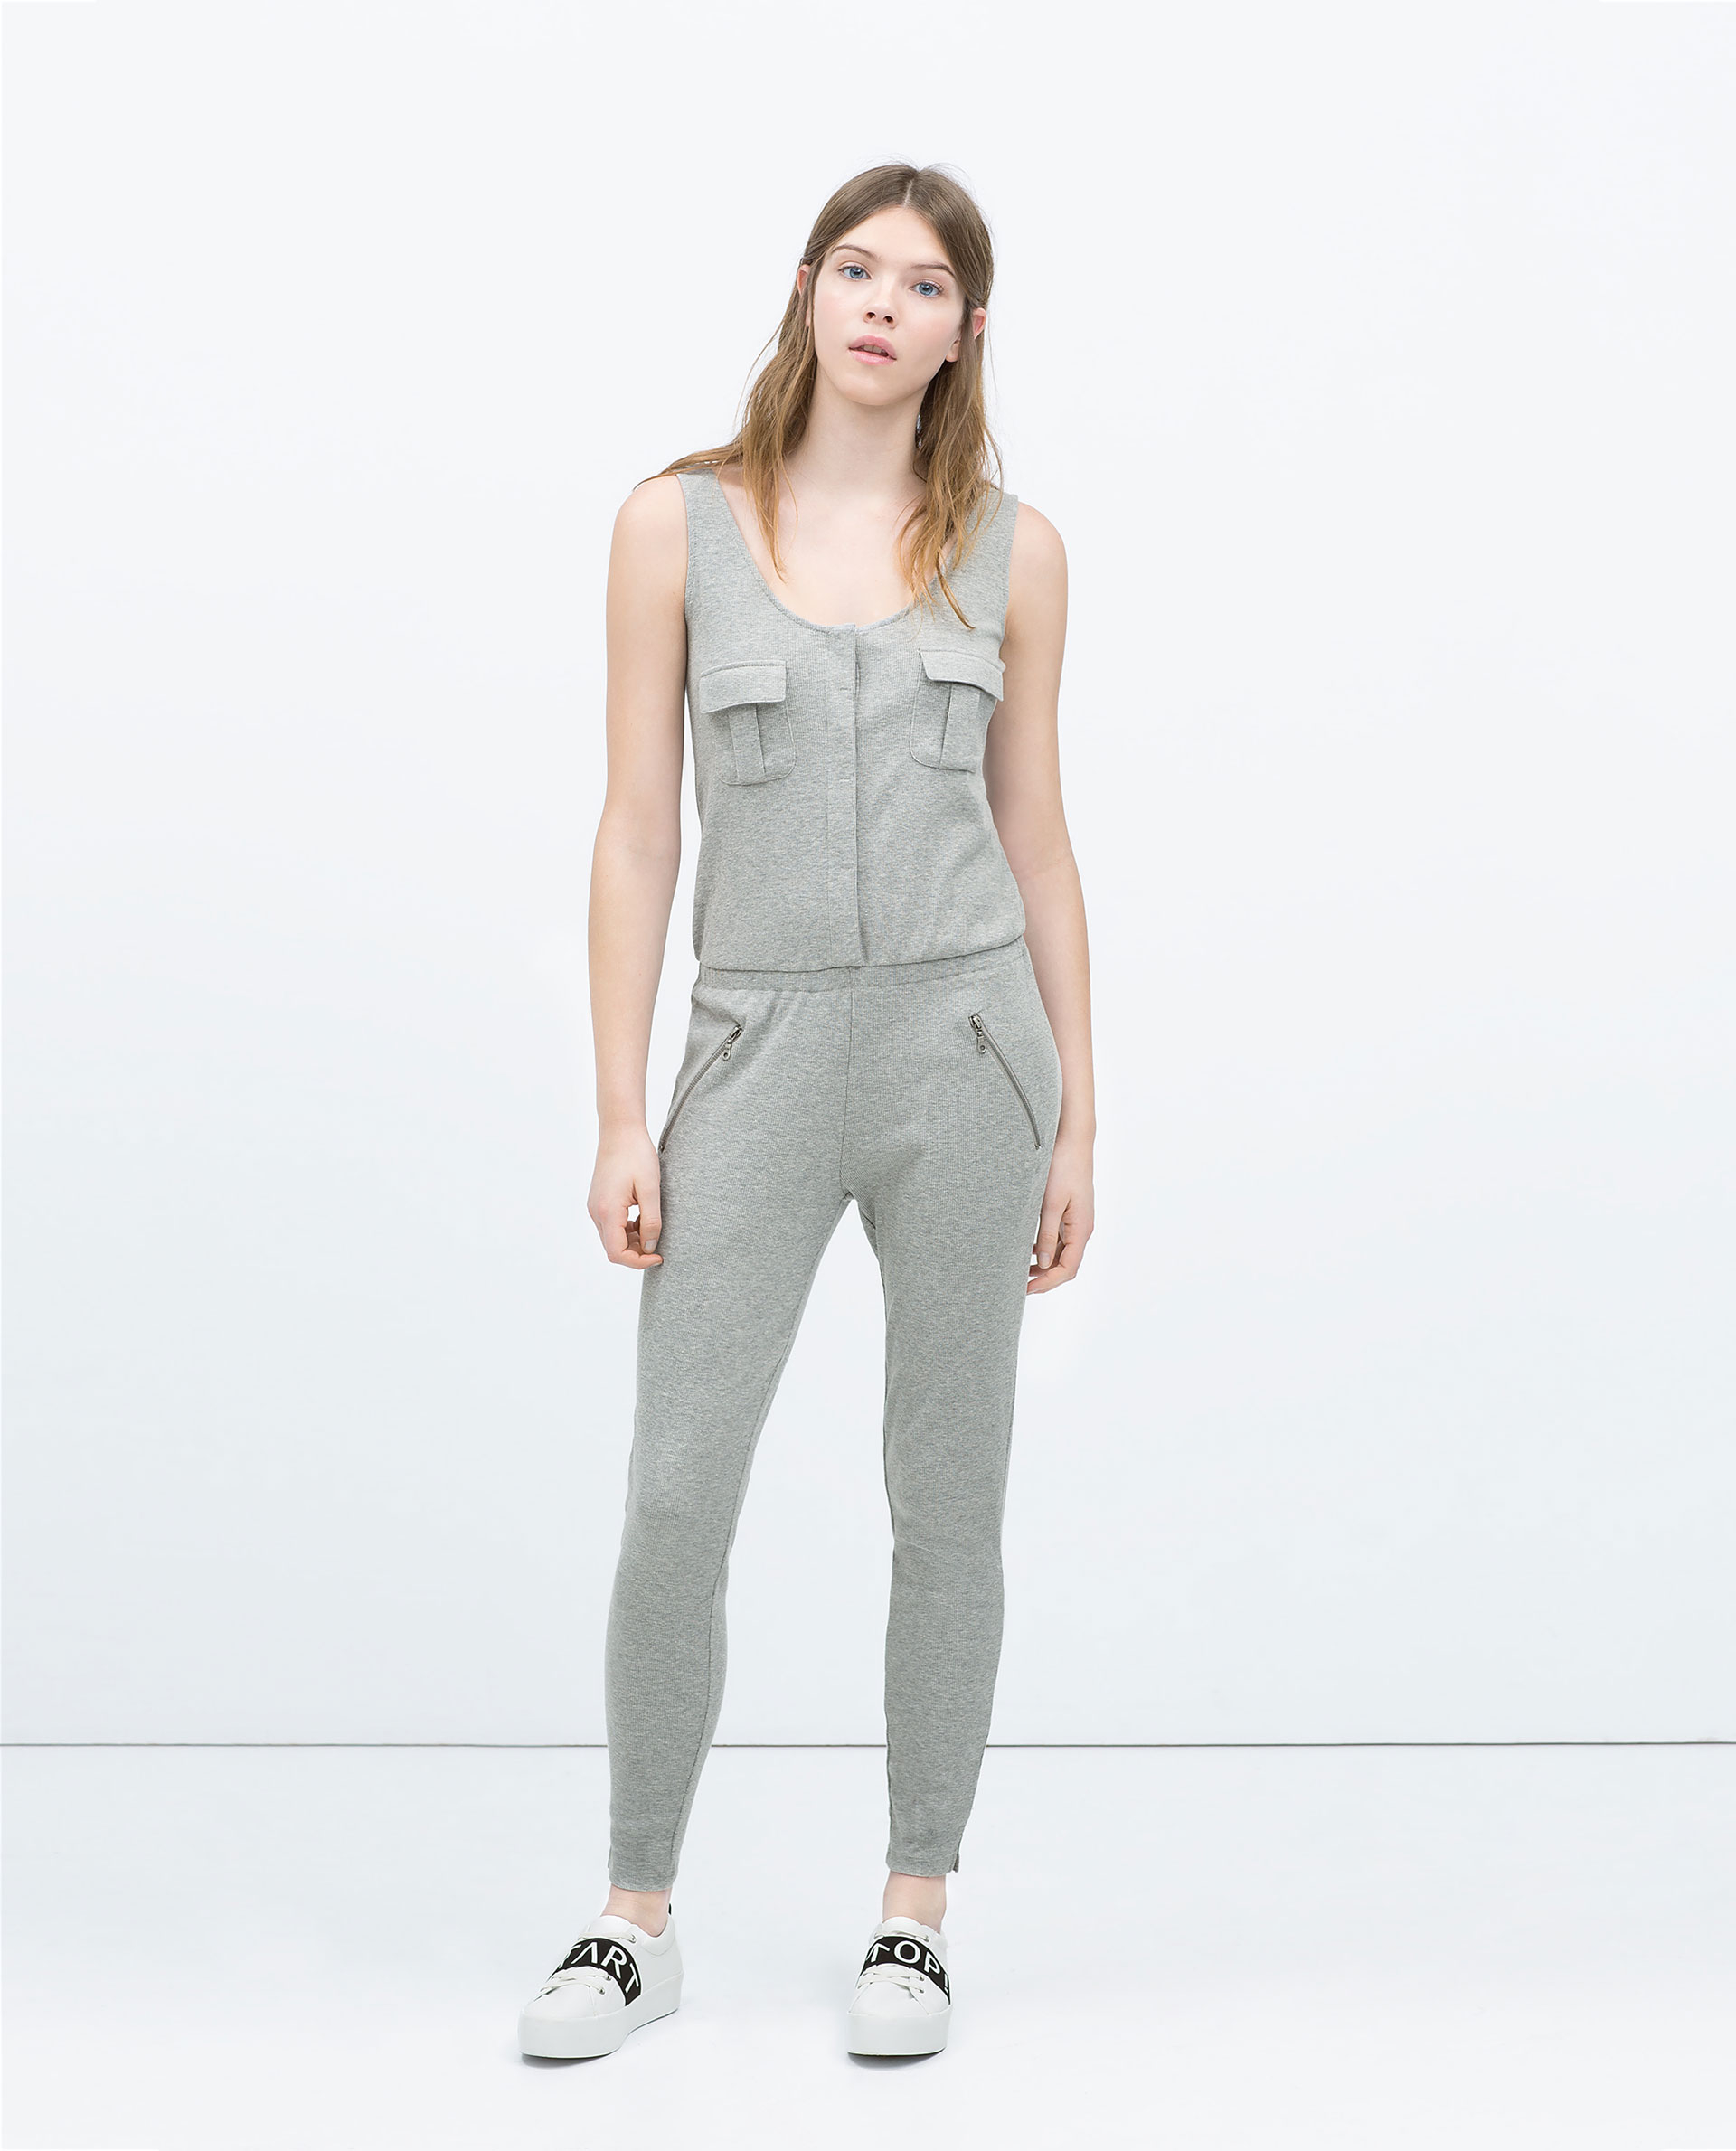 Popular Wearing Reiss Jumpsuit Jumpsuit For Tall Women Very Suitable!, ZARA Sandals This Shoot Is Probably One Of My Favorites The Location, The Light, The Jumpsuit I Decided To Use This Location For The Second Editorial Shot For Reiss